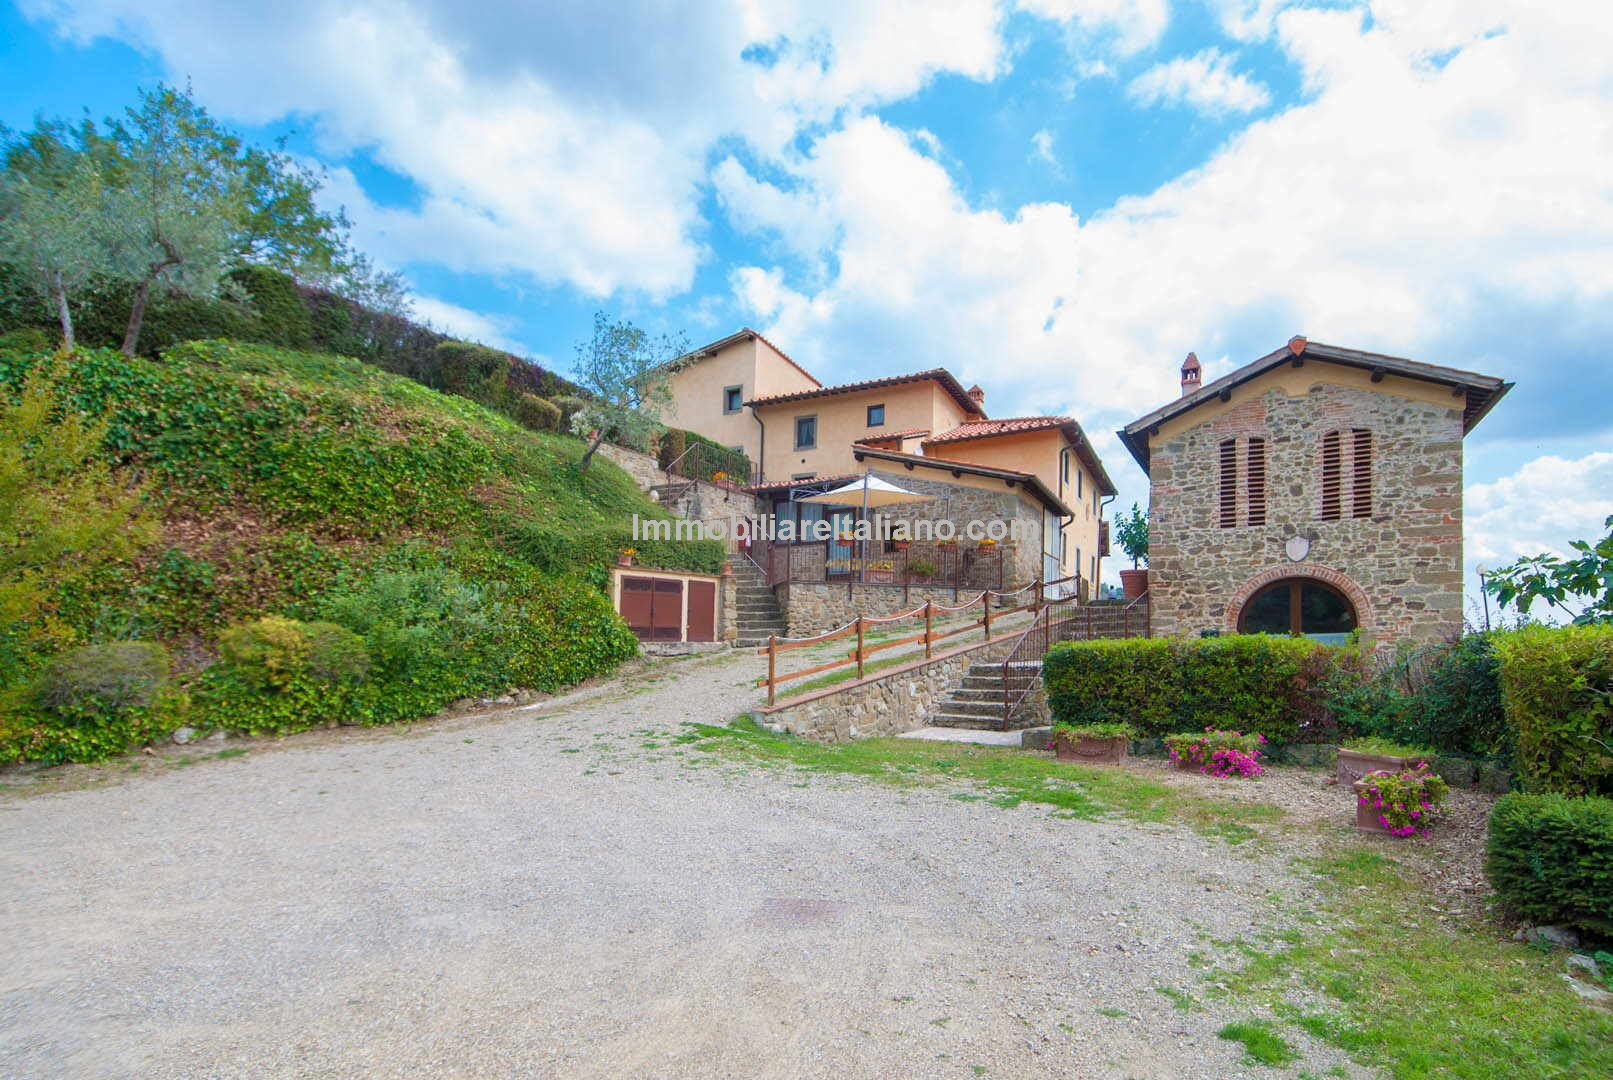 Italian Farmhouses For Sale Tuscan Farmhouse Agriturismo For Sale Immobiliare Italiano